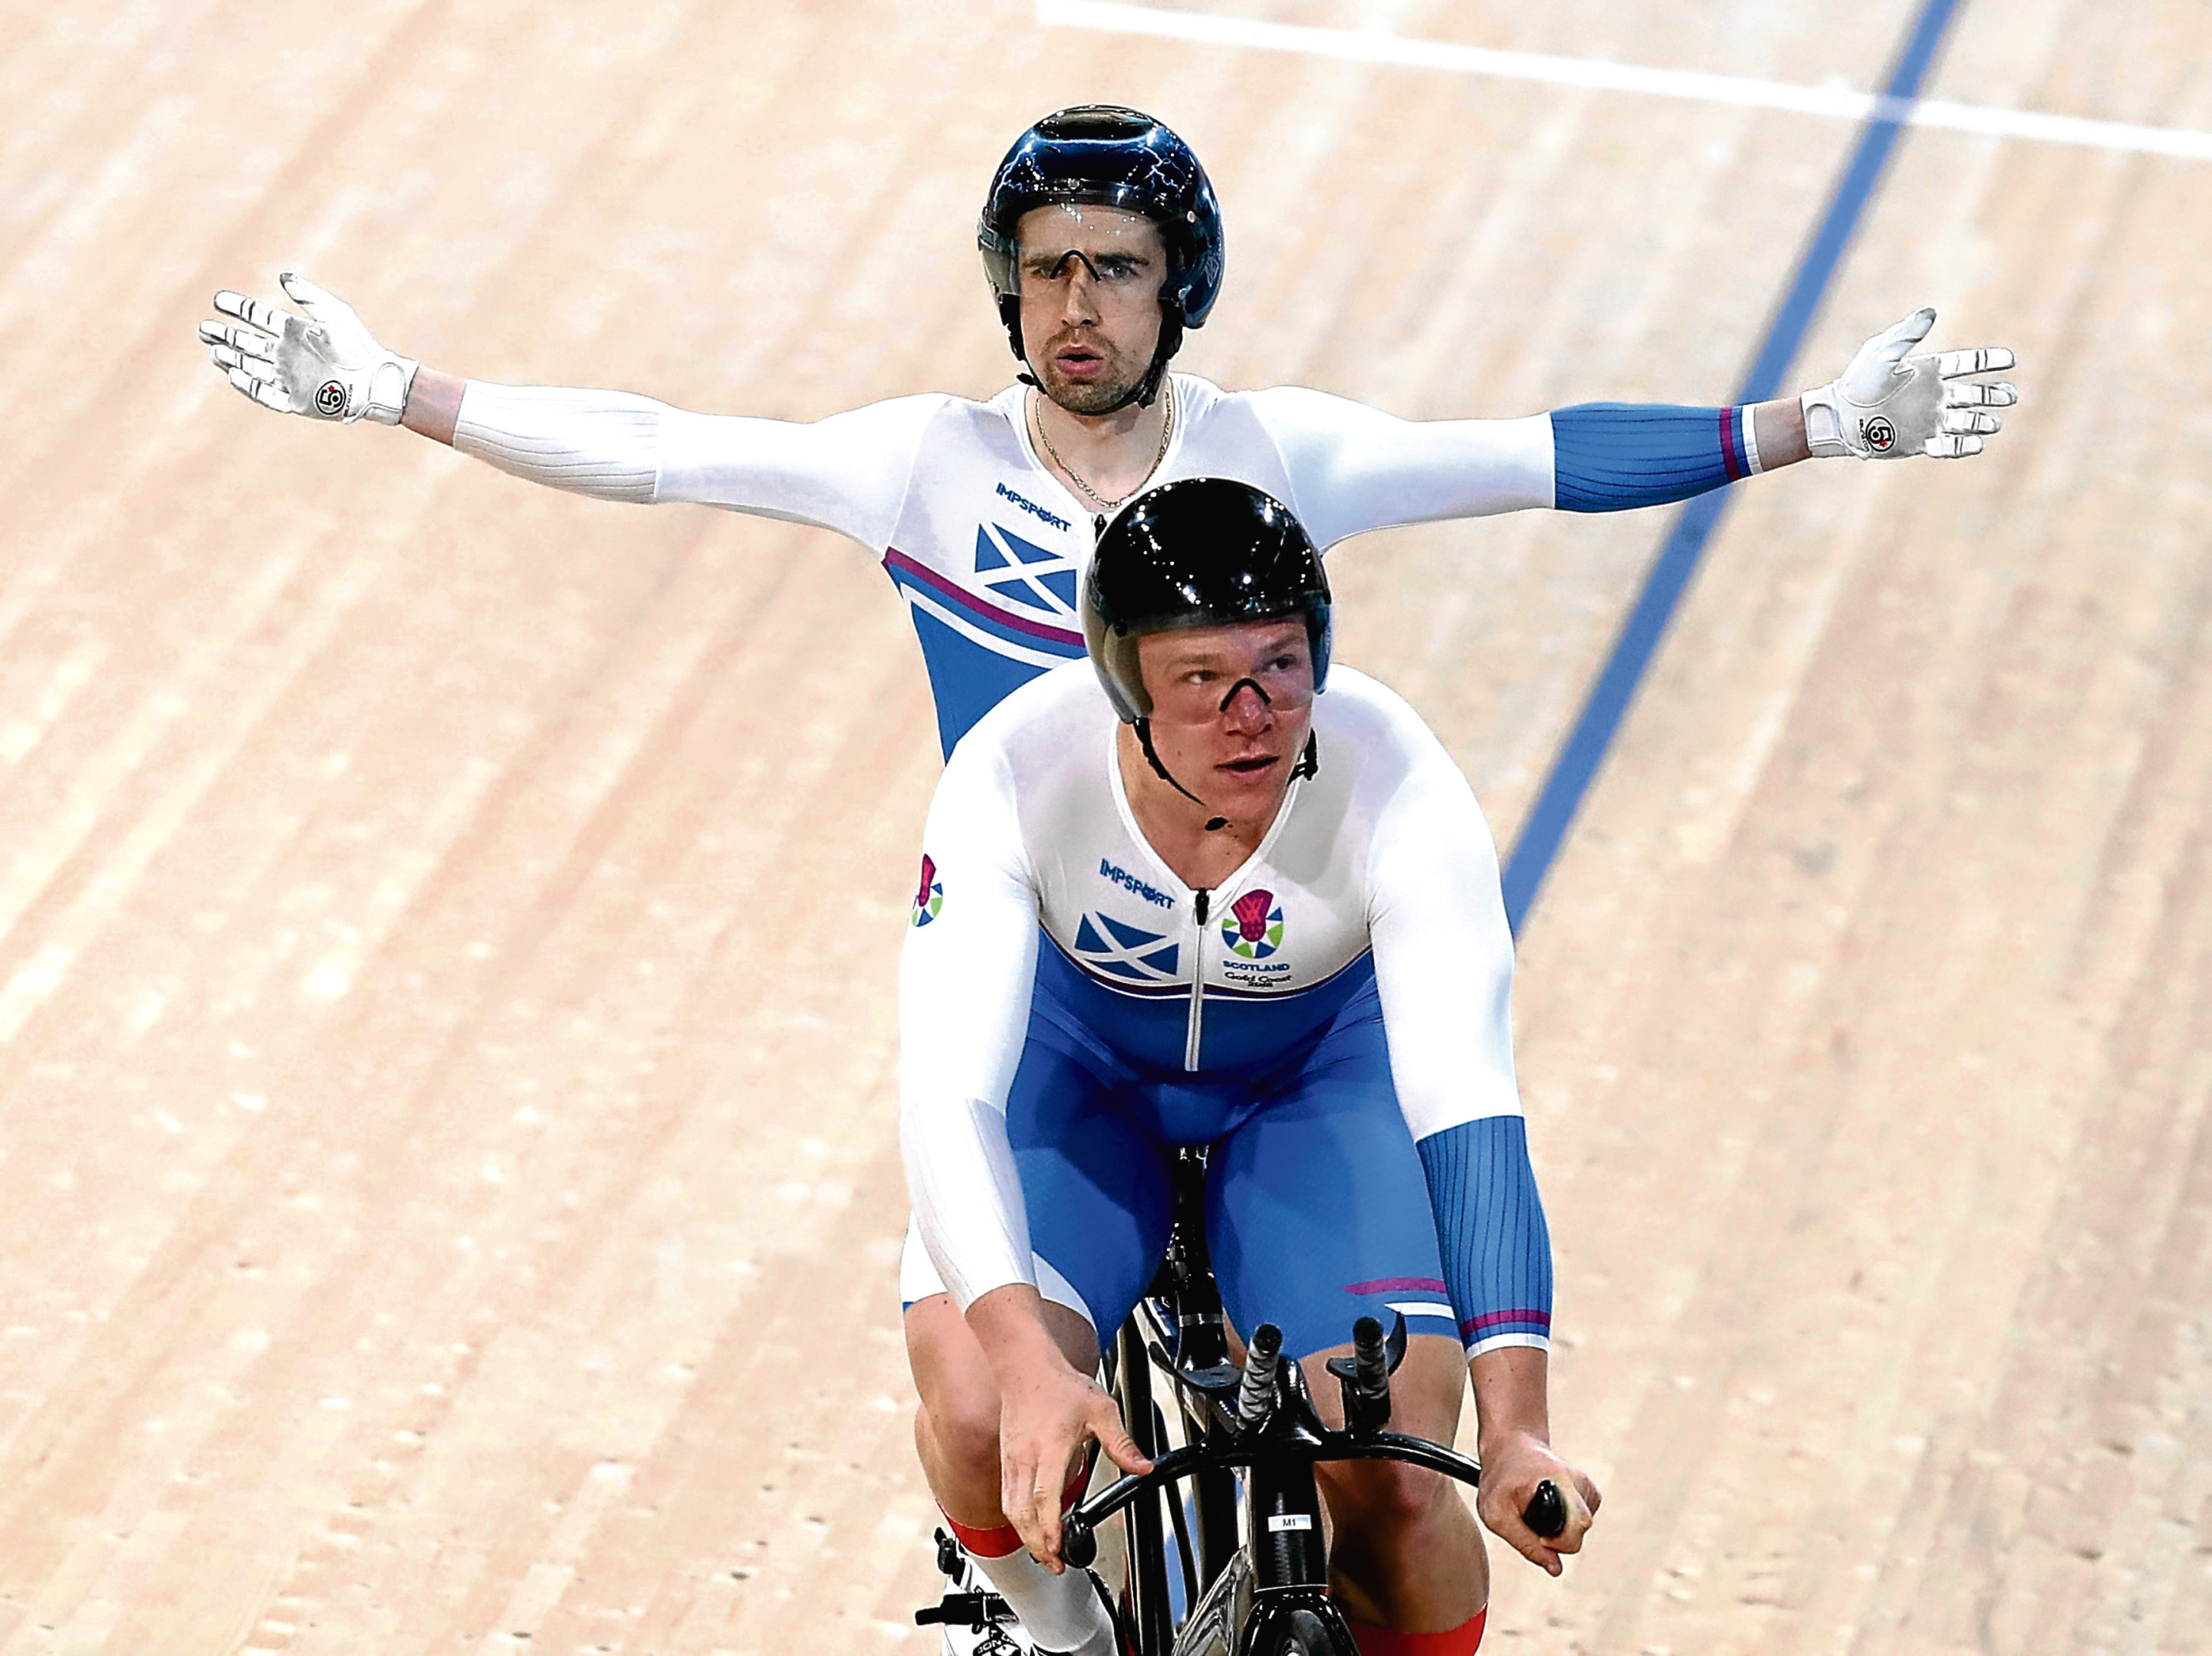 Neil Fachie of Scotland and pilot Matt Rotherham celebrate winning gold in the Men's B&VI 1000m Time Trial during the Cycling on day one of the Gold Coast 2018 Commonwealth Games at Anna Meares Velodrome.